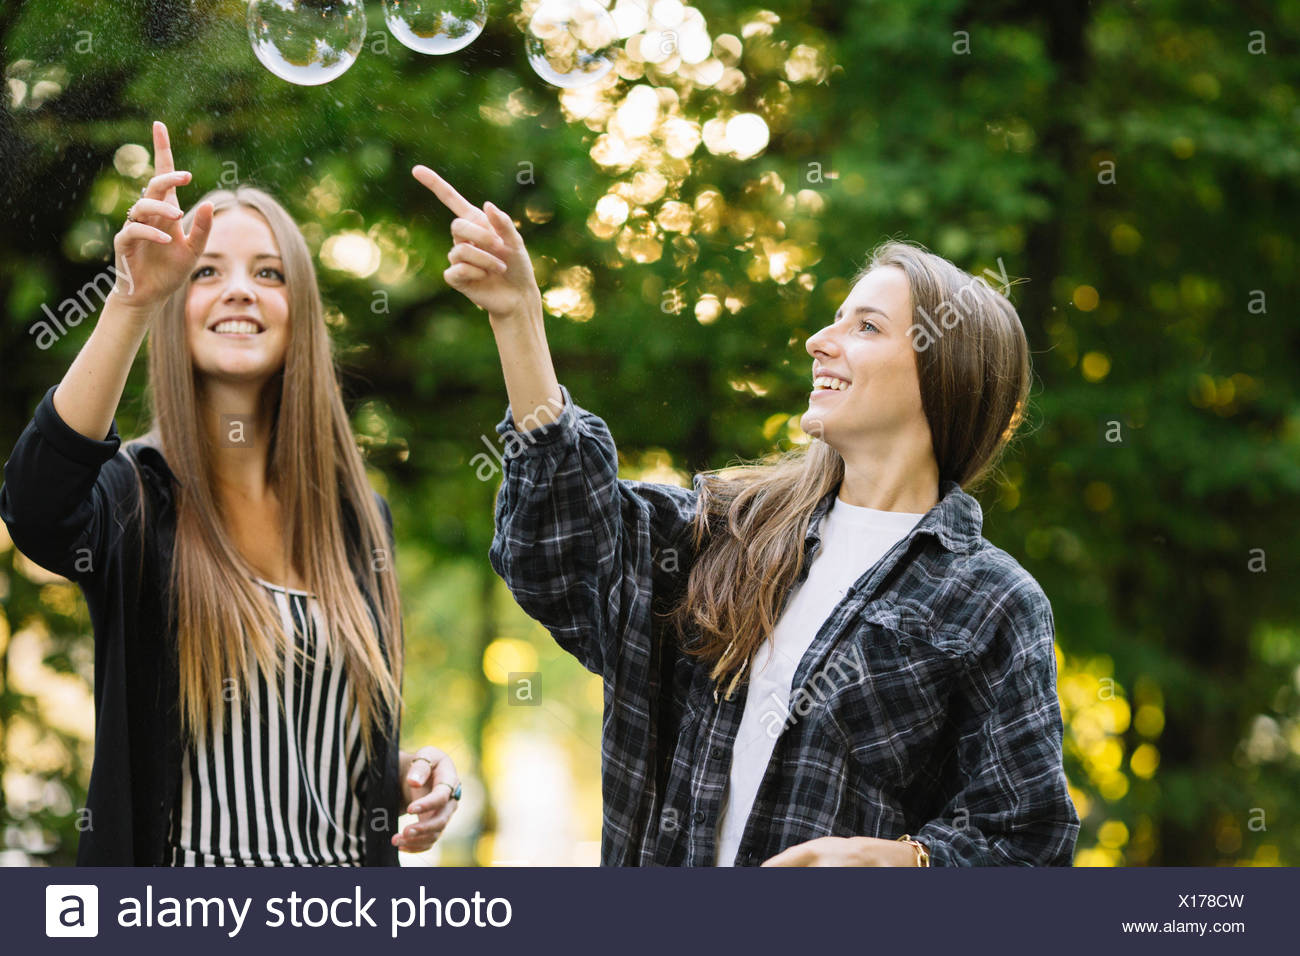 Two young female friends bursting floating bubbles in park - Stock Image